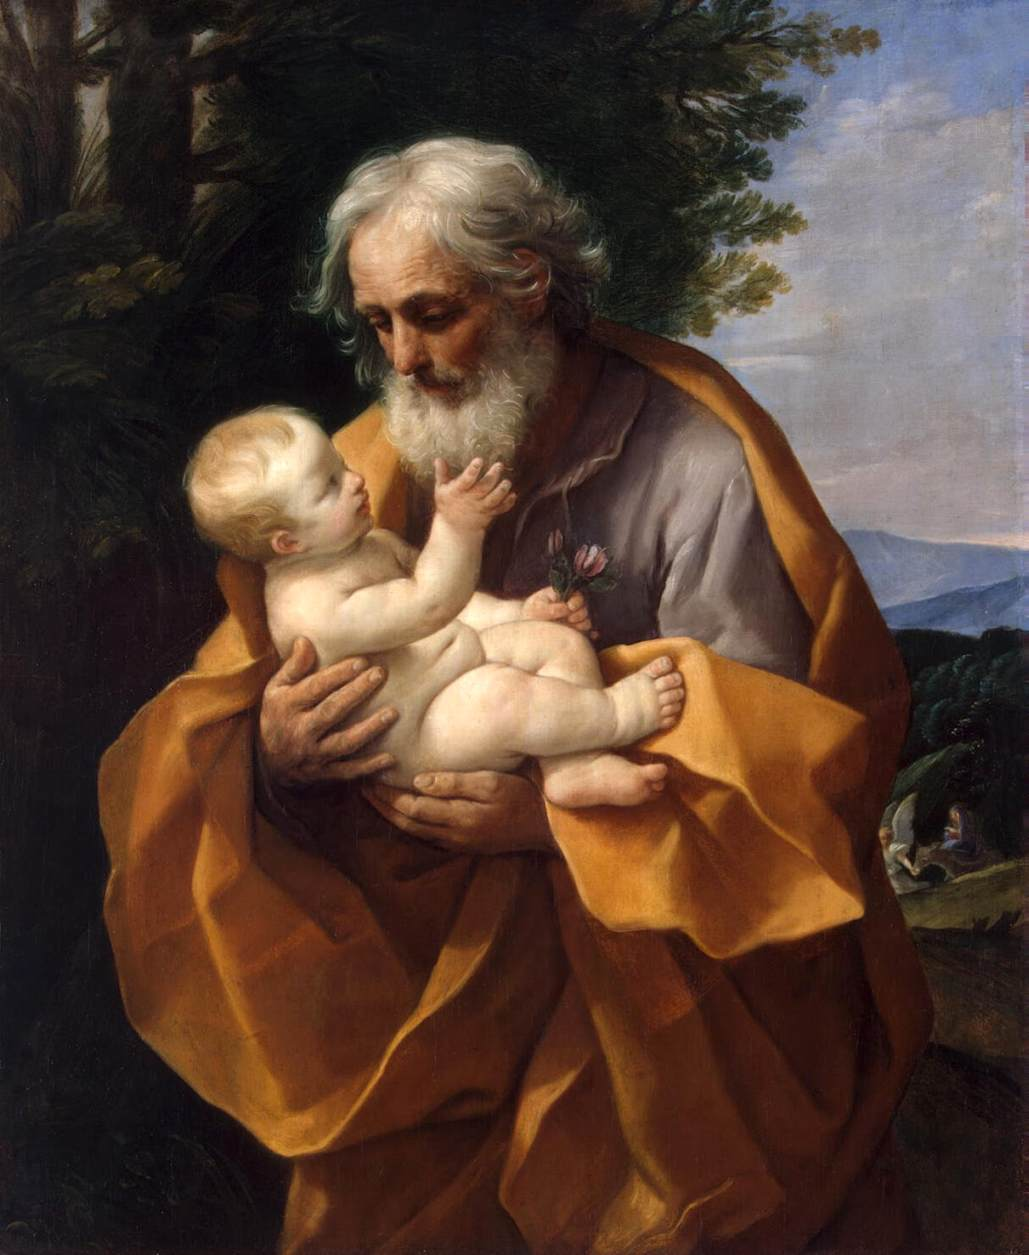 St. Joseph with the Infant - Reni 1620s